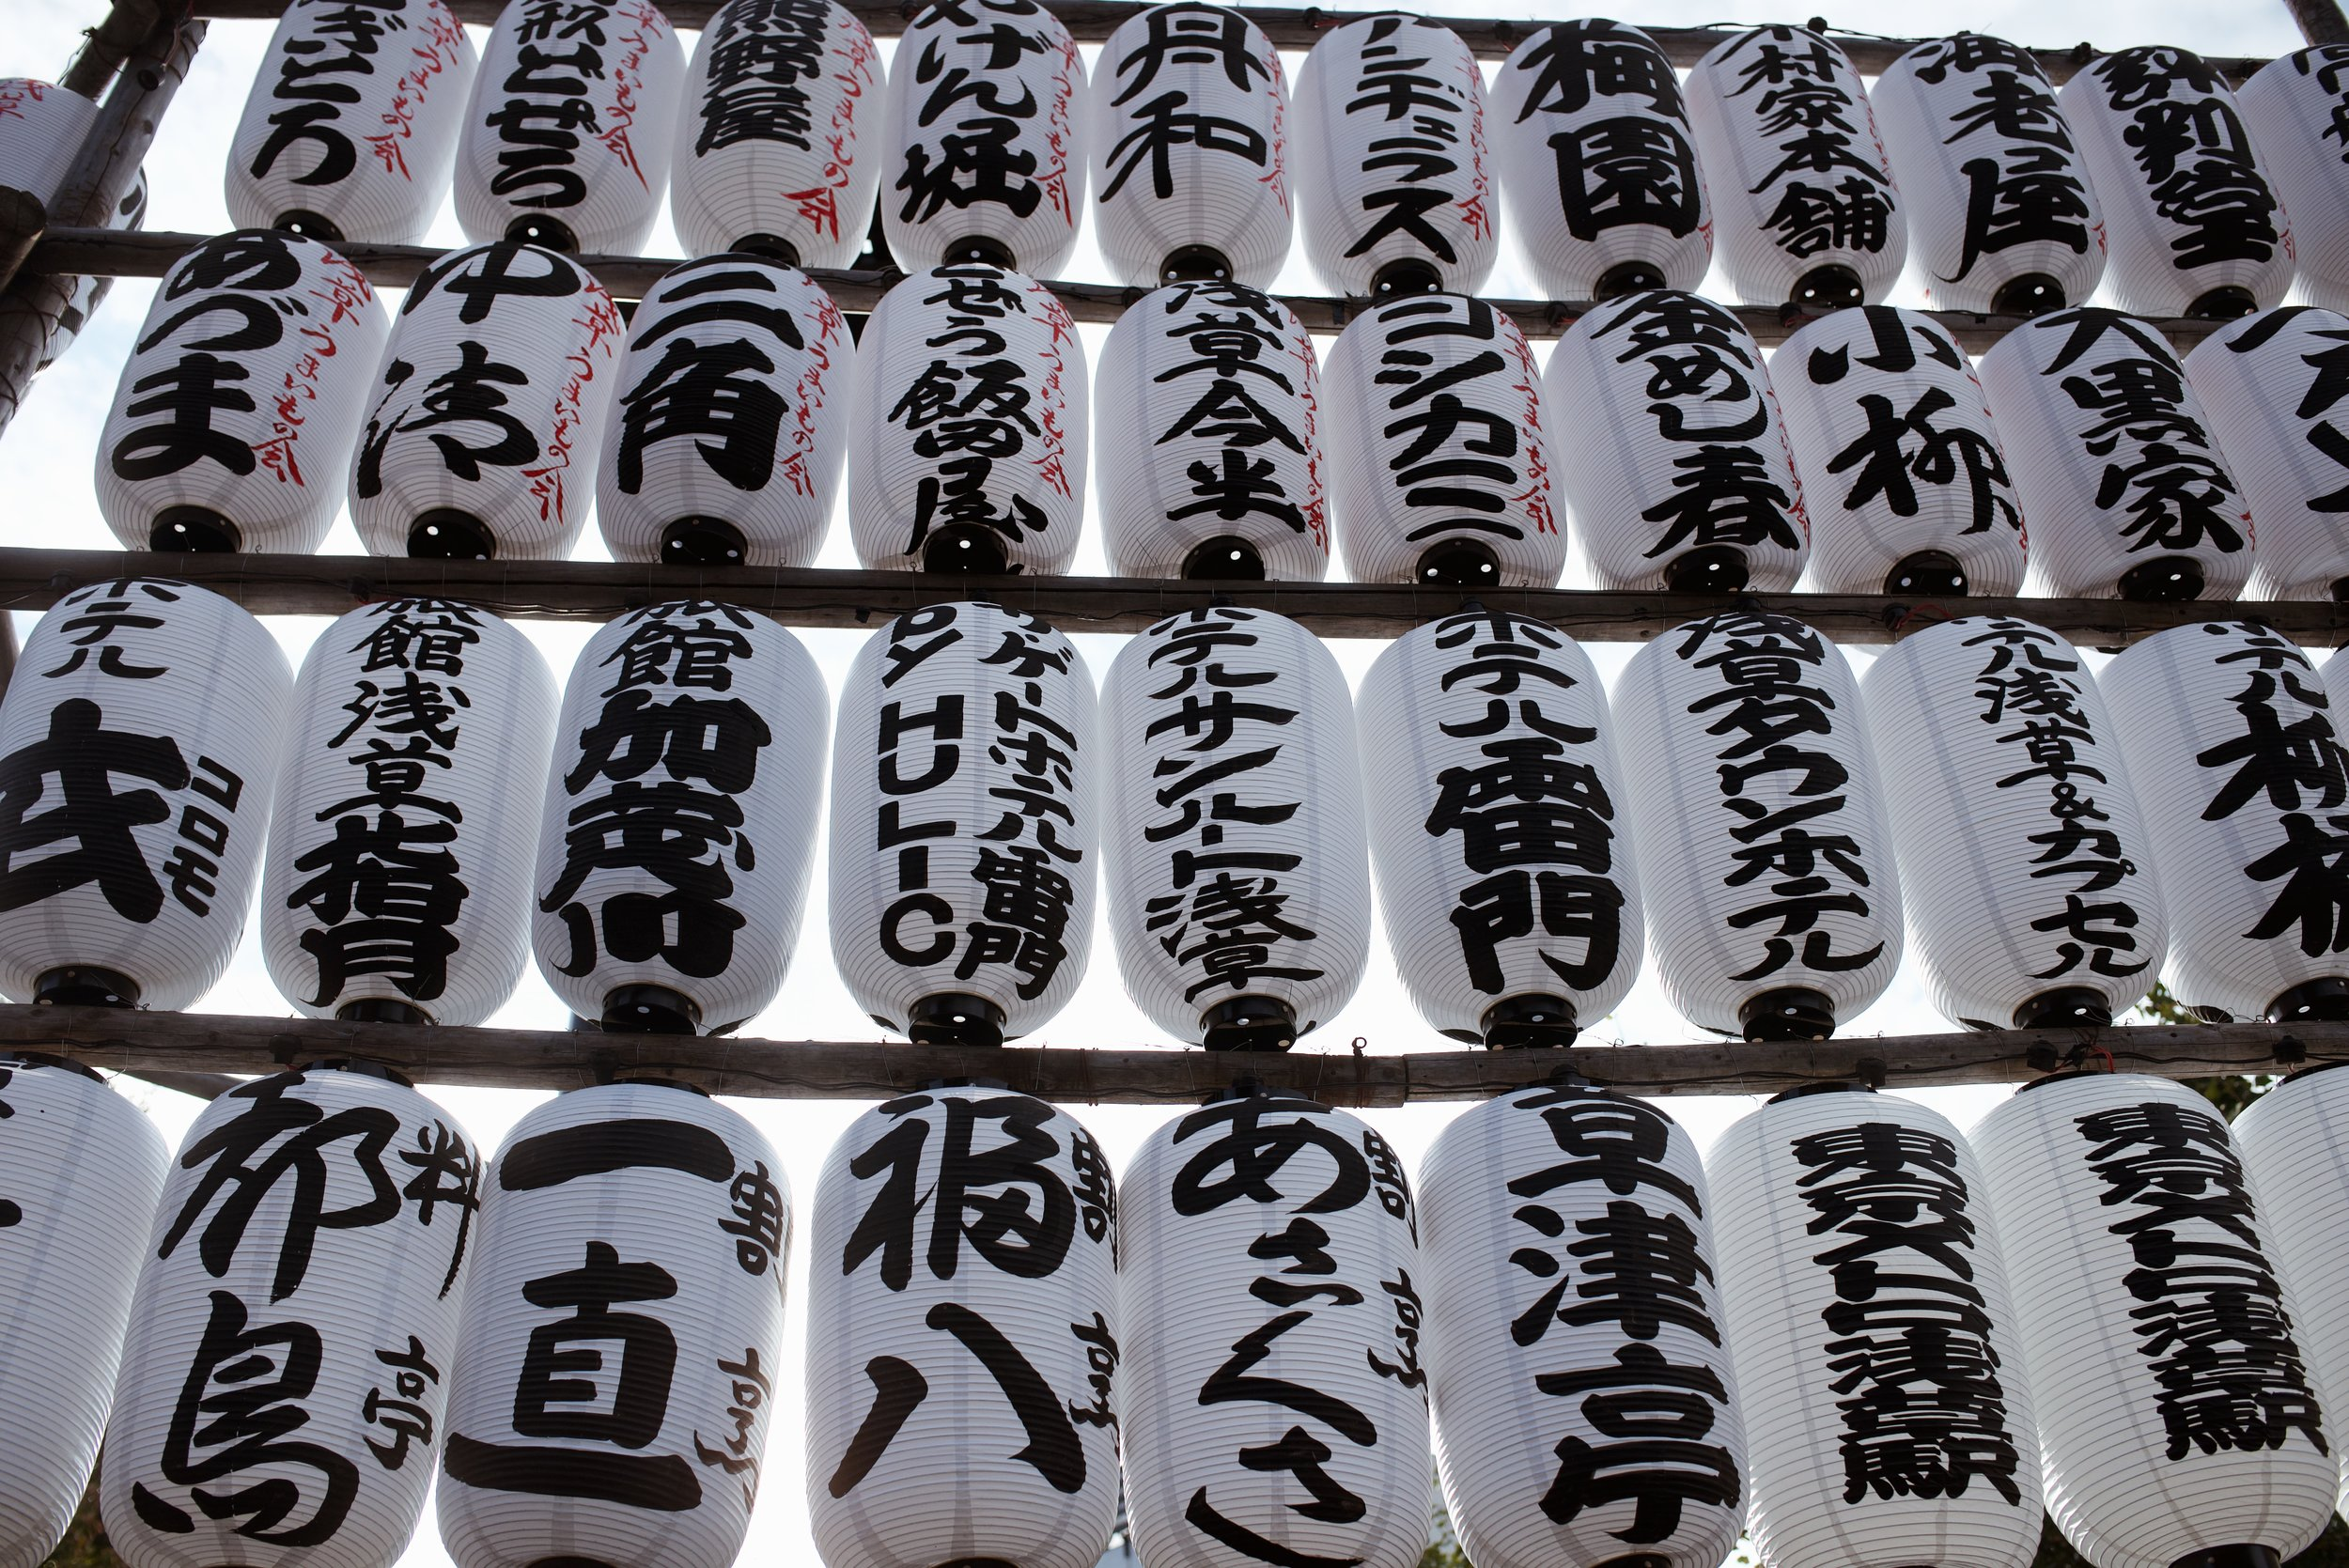 The-Look-Principle-Japanese-Shrines-And-Temples-6.jpg